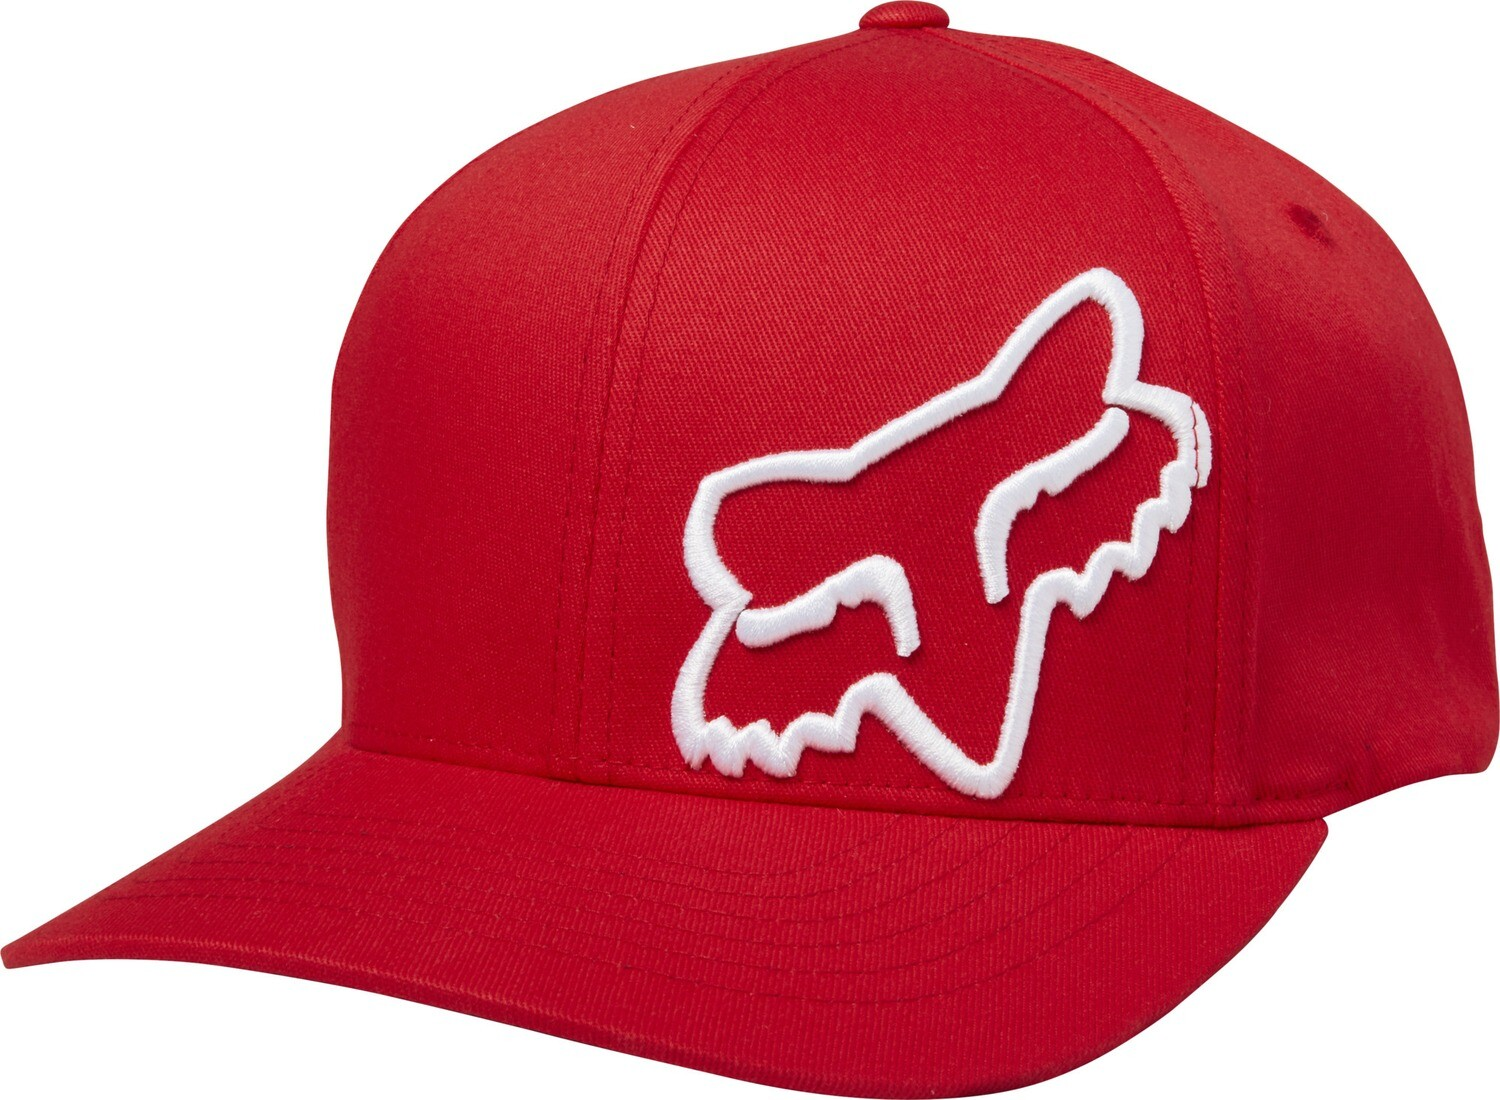 GORRA FOX FLEX 45 DRK RD